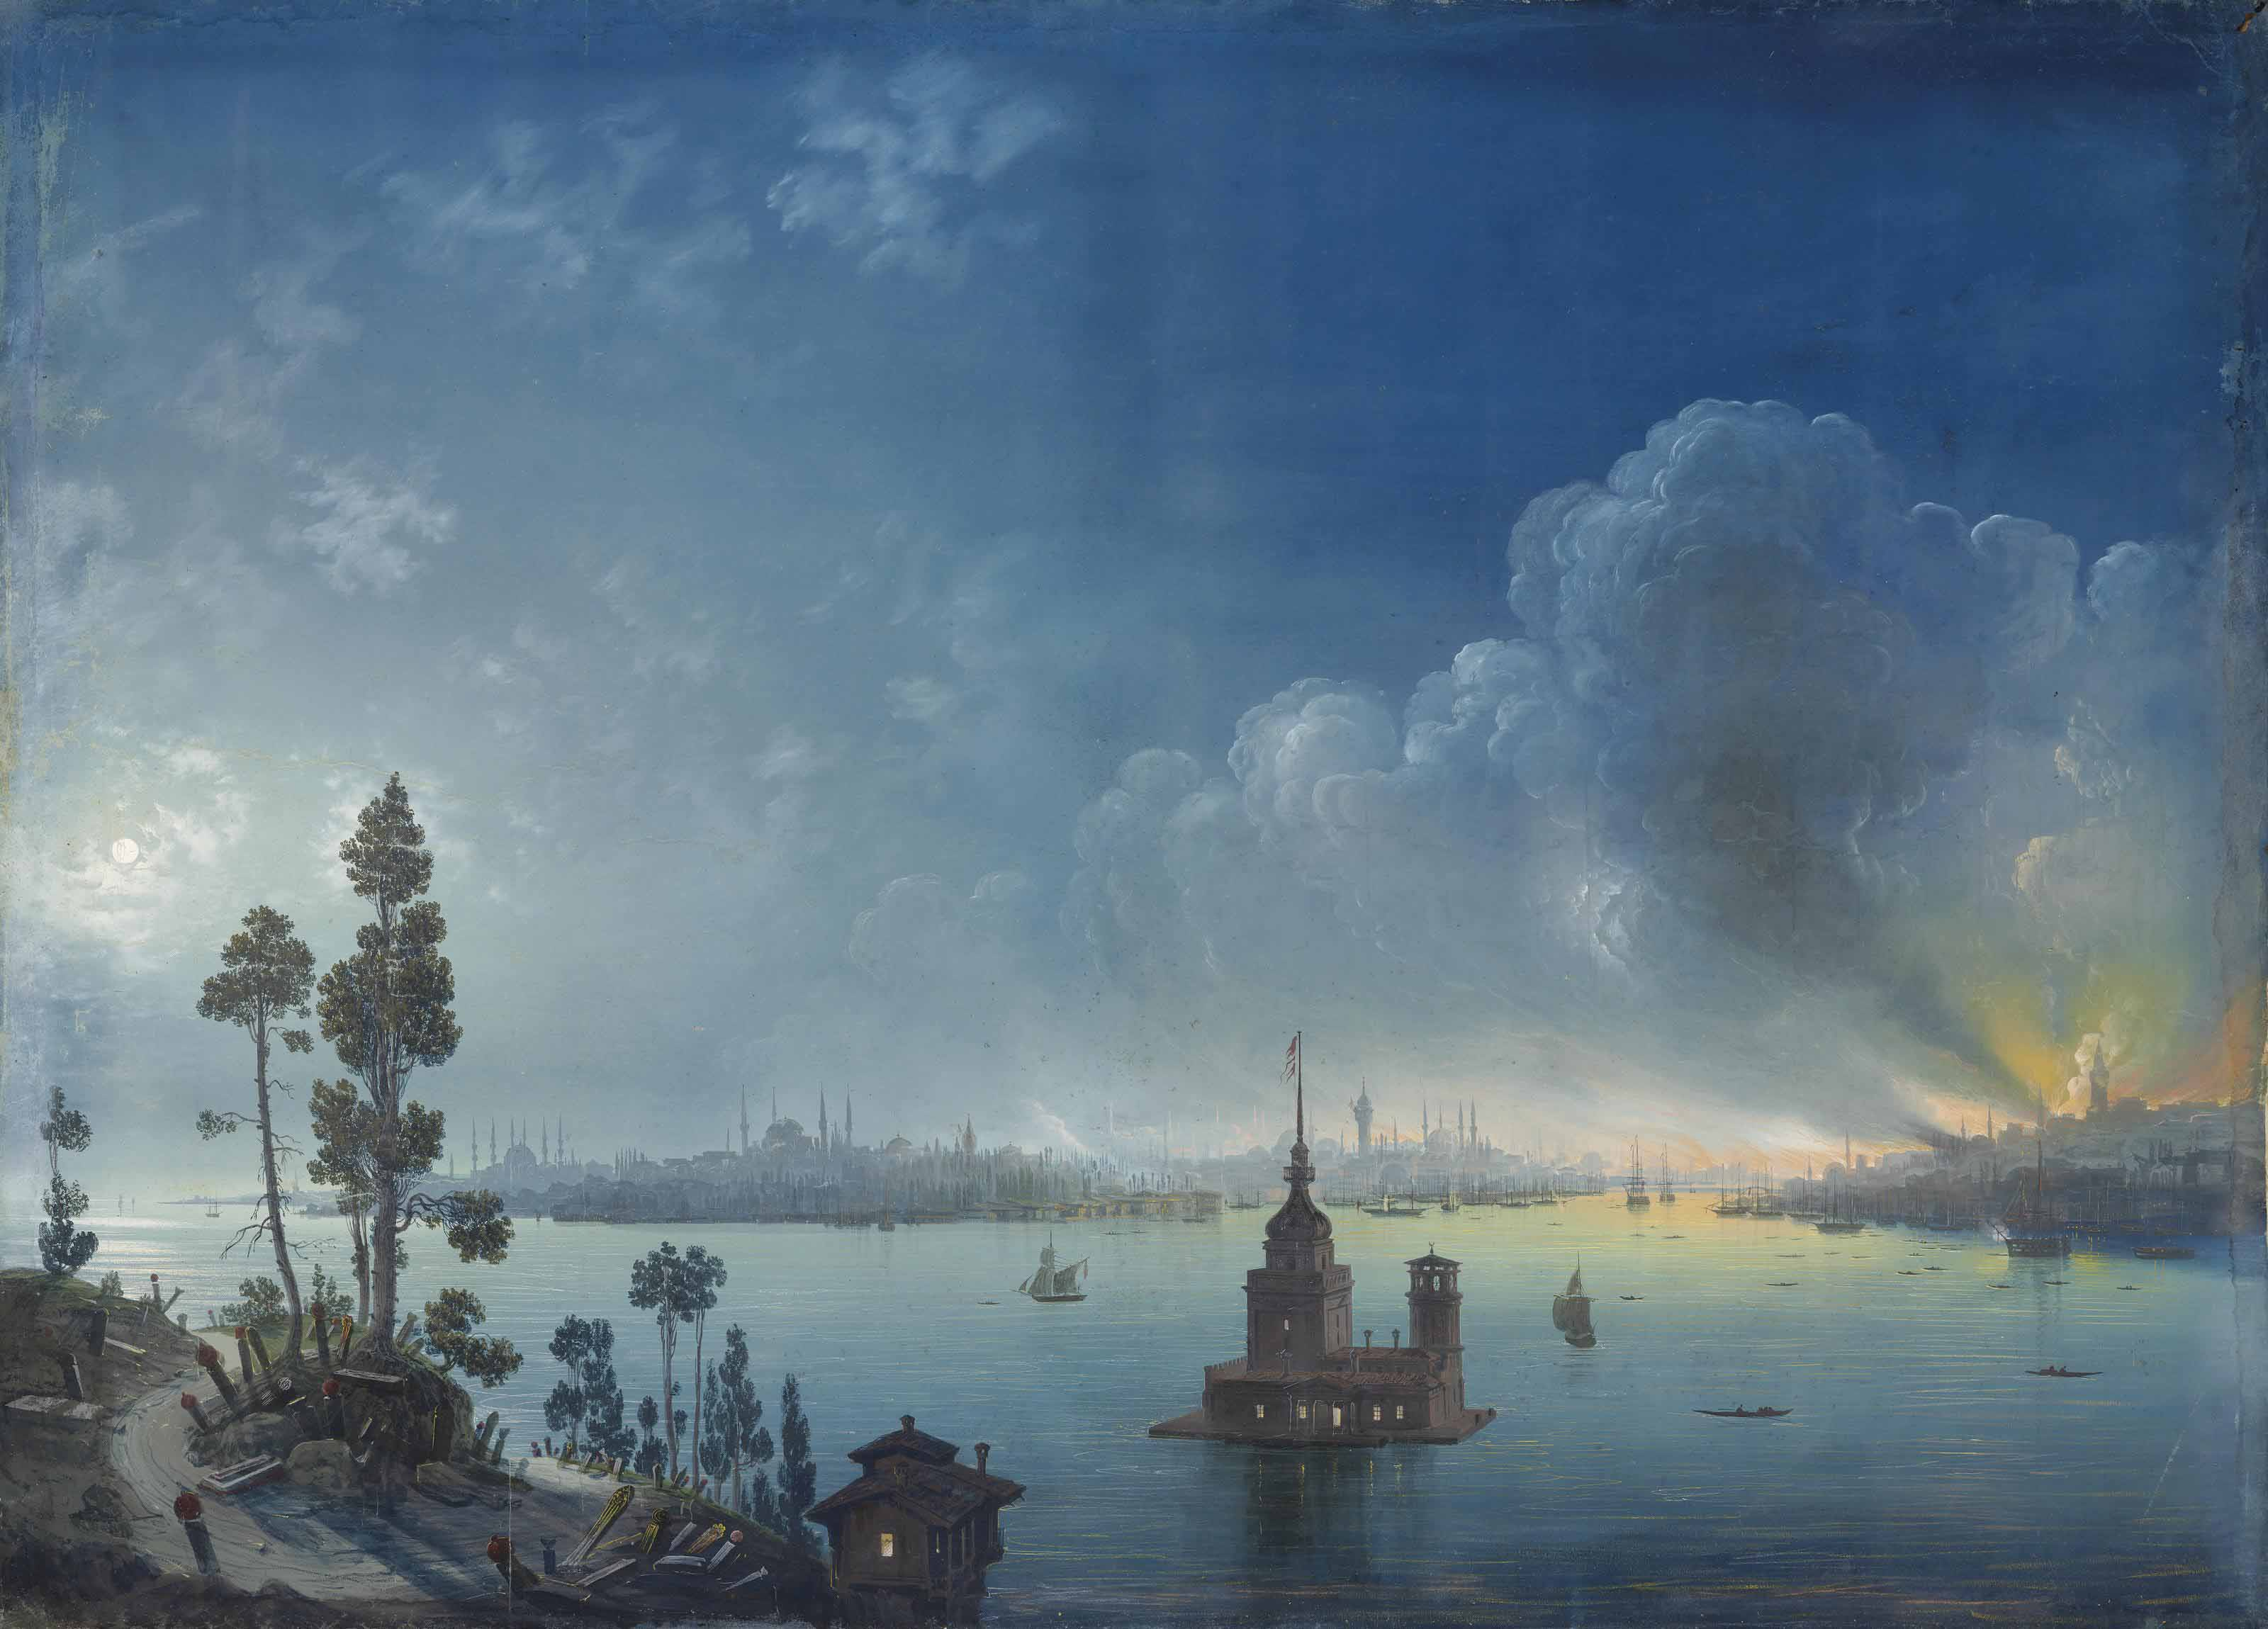 Constantinople - a view across the Bosphorus towards Leander's Tower by night